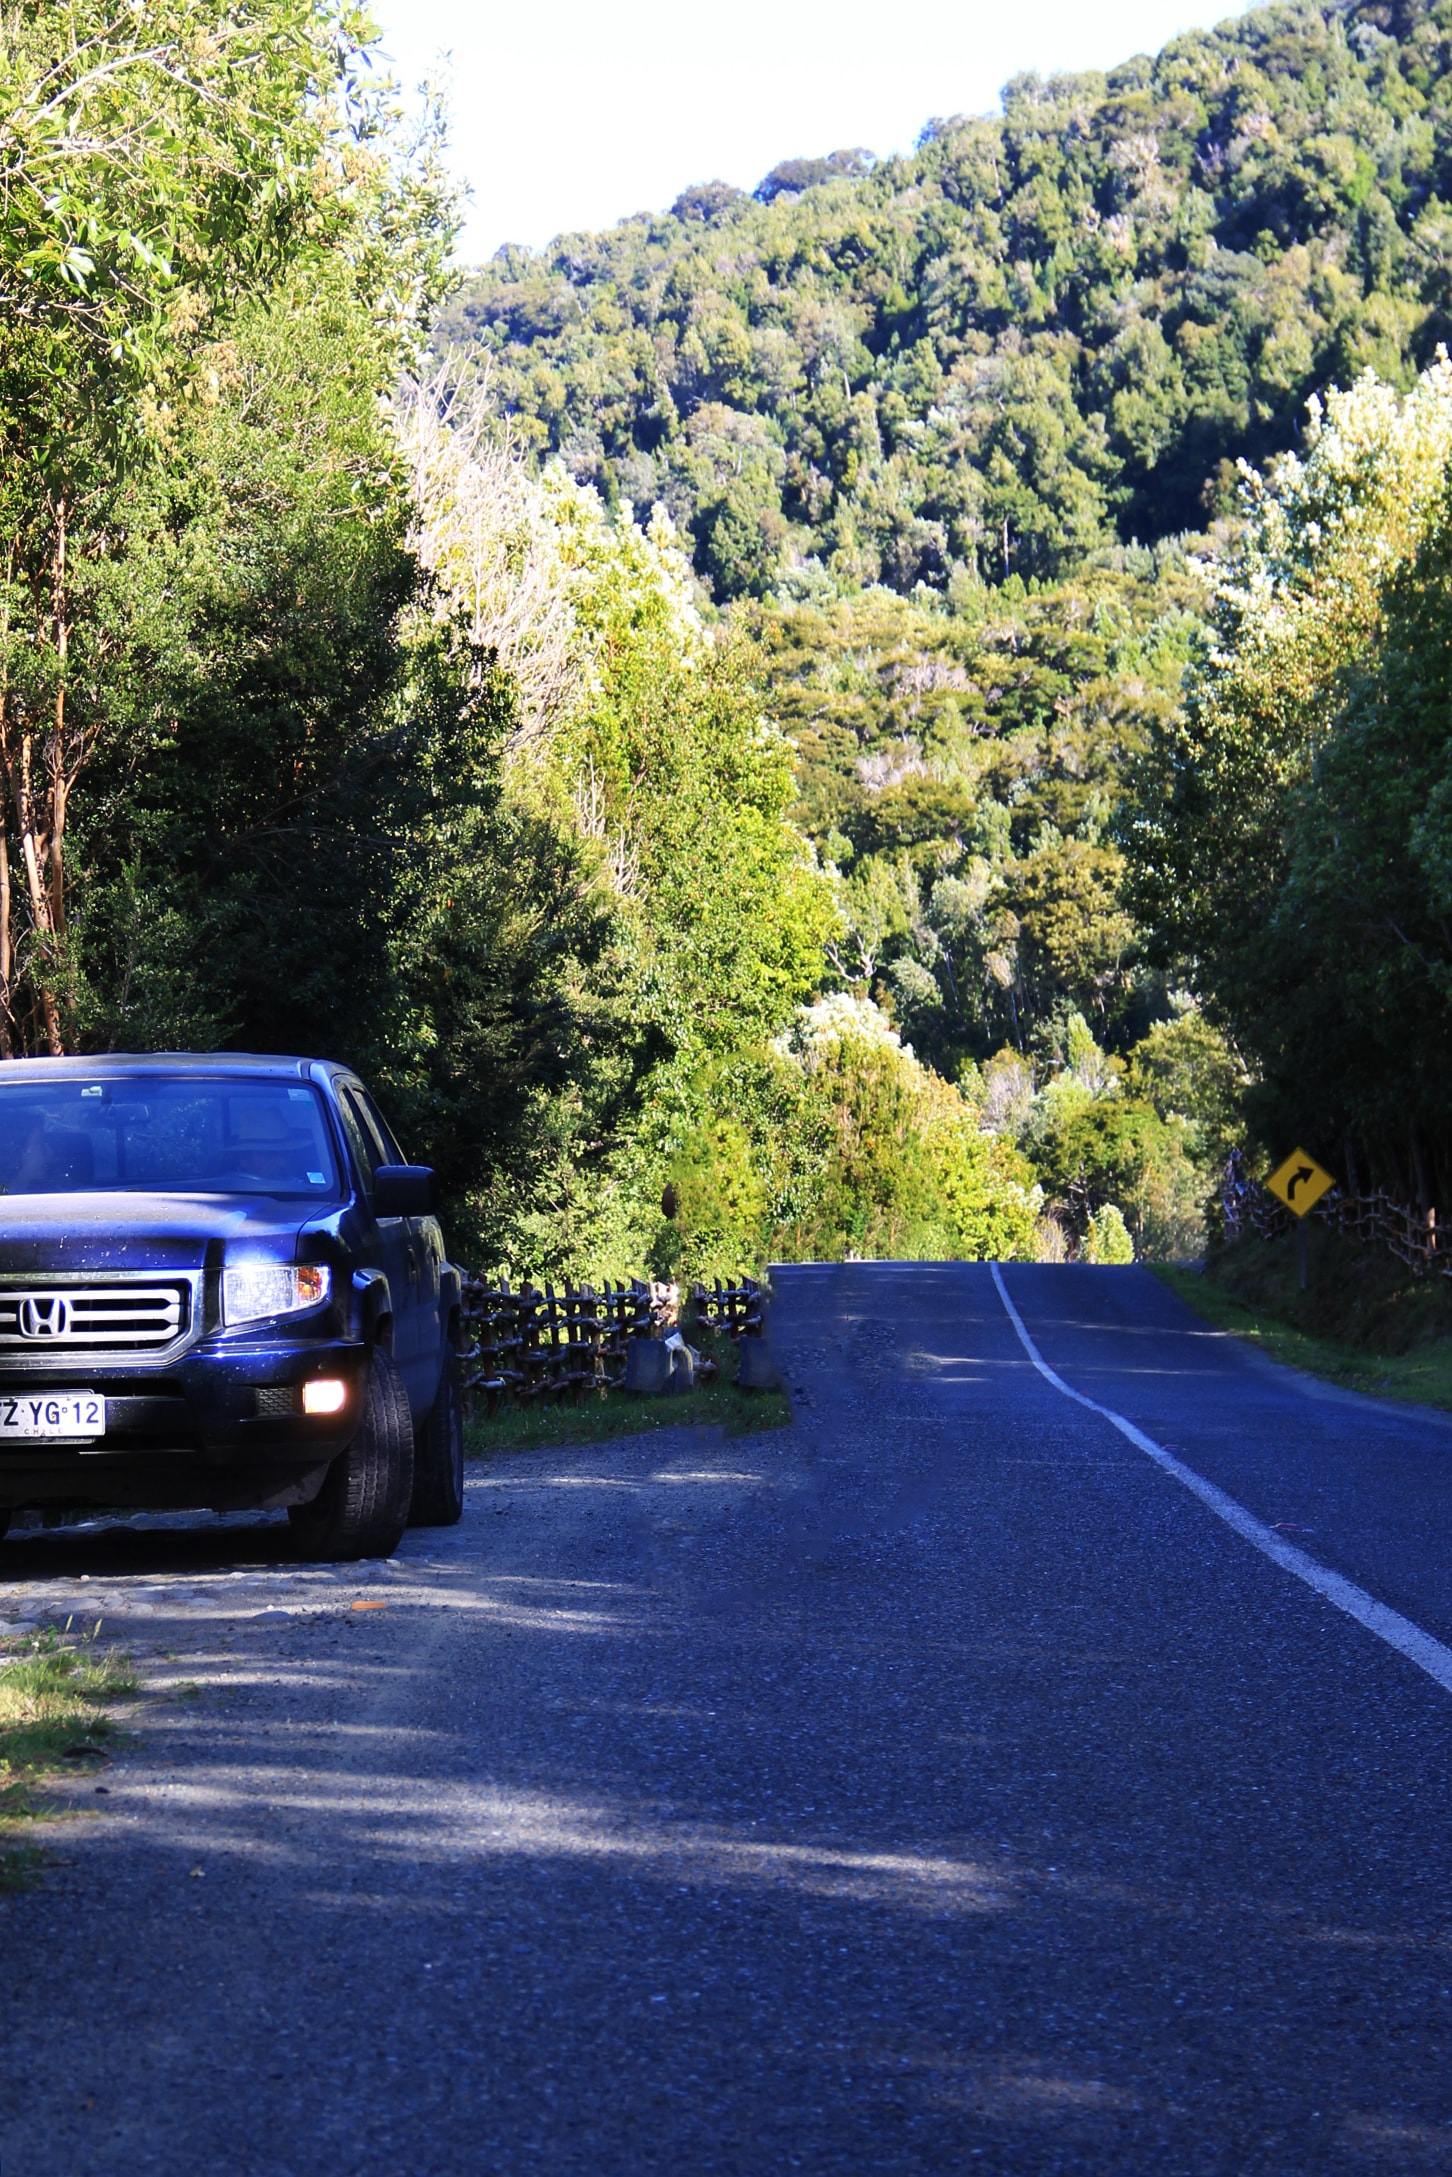 travel tips for road trips - viaje en carretera - chile | Golden Strokes